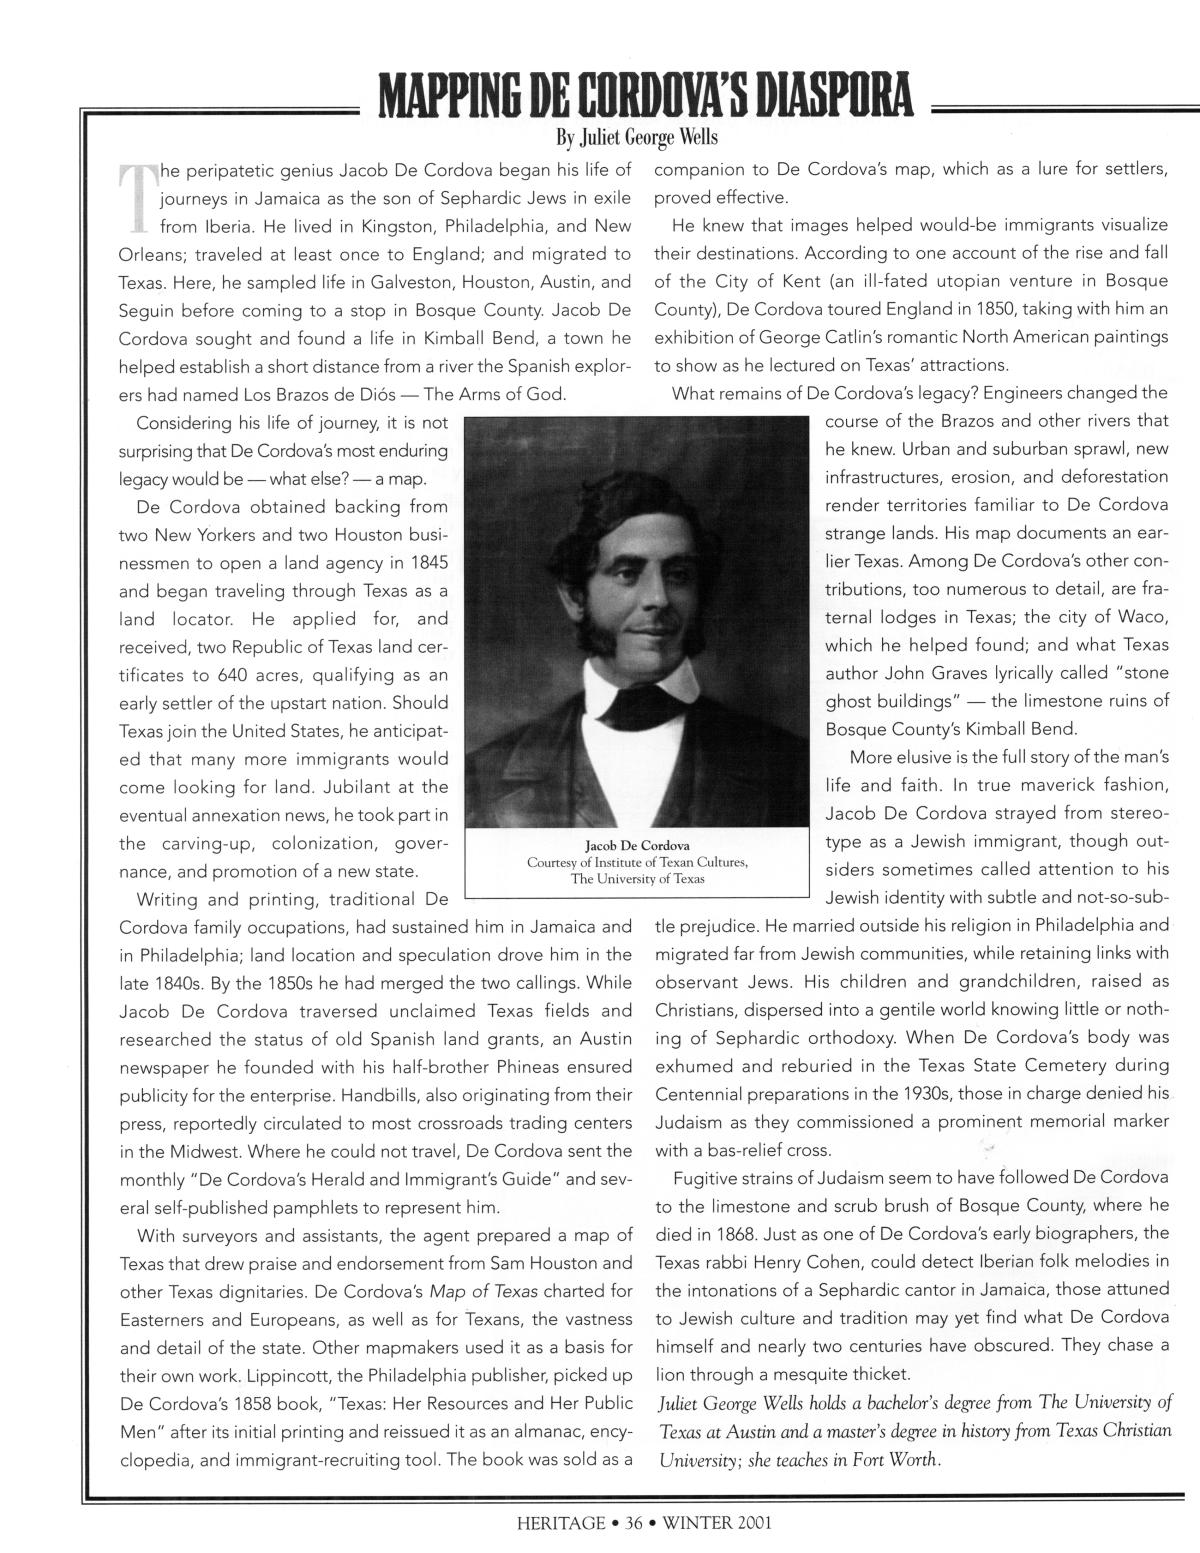 Texas Heritage, Volume 19, Number 1, Winter 2001                                                                                                      36